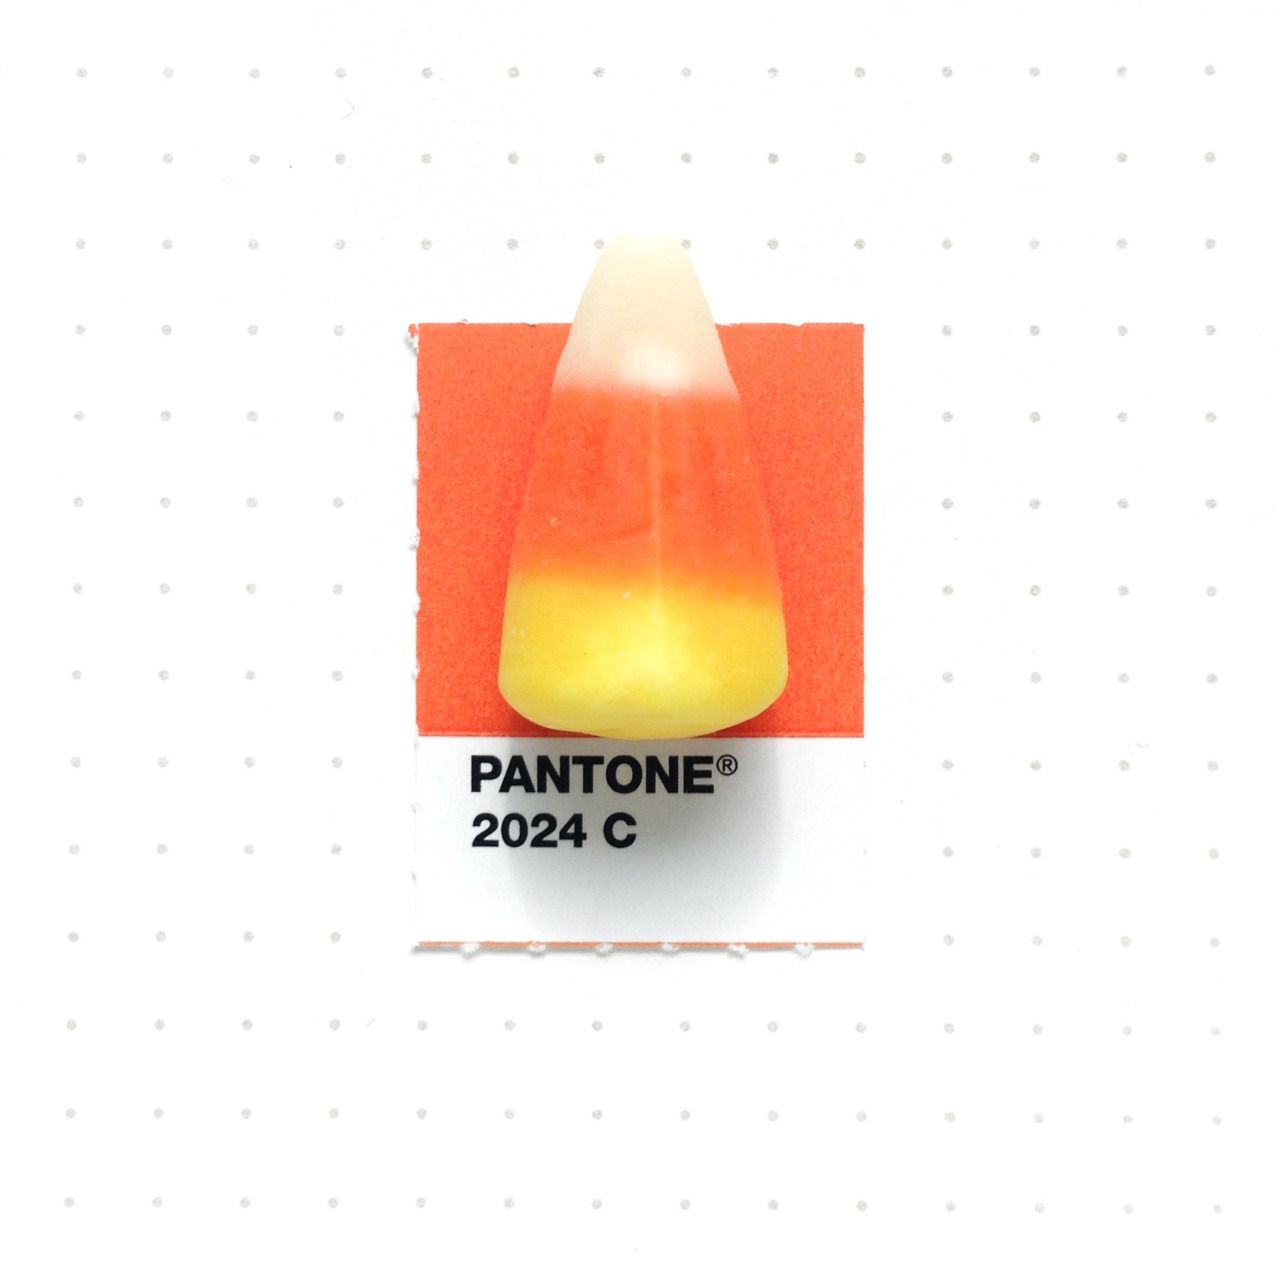 "Pantone 2024 color match.  Candy corn. My daughter loves these. I'm excited for Thanksgiving this year, since my parents are coming to visit from Indonesia   // SNEAK PEEK PHOTO from my upcoming book ""Tiny Pantone Objects"" //"